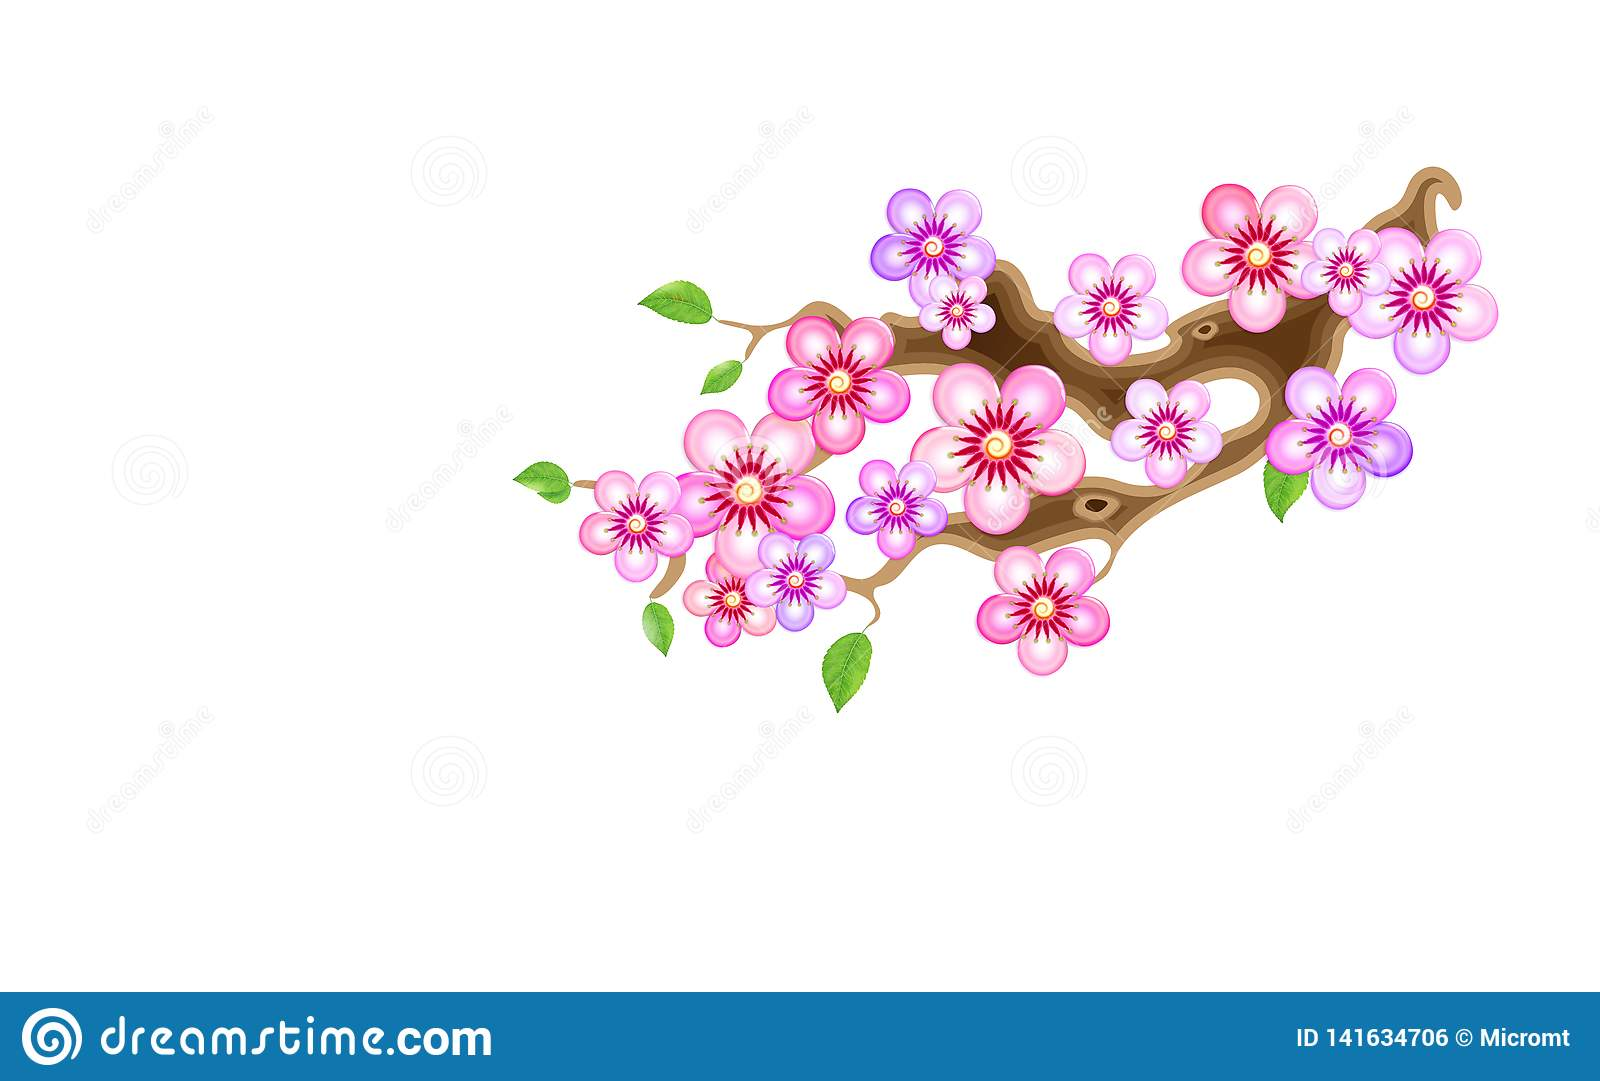 Absolutely asian style cherry blossom picuture